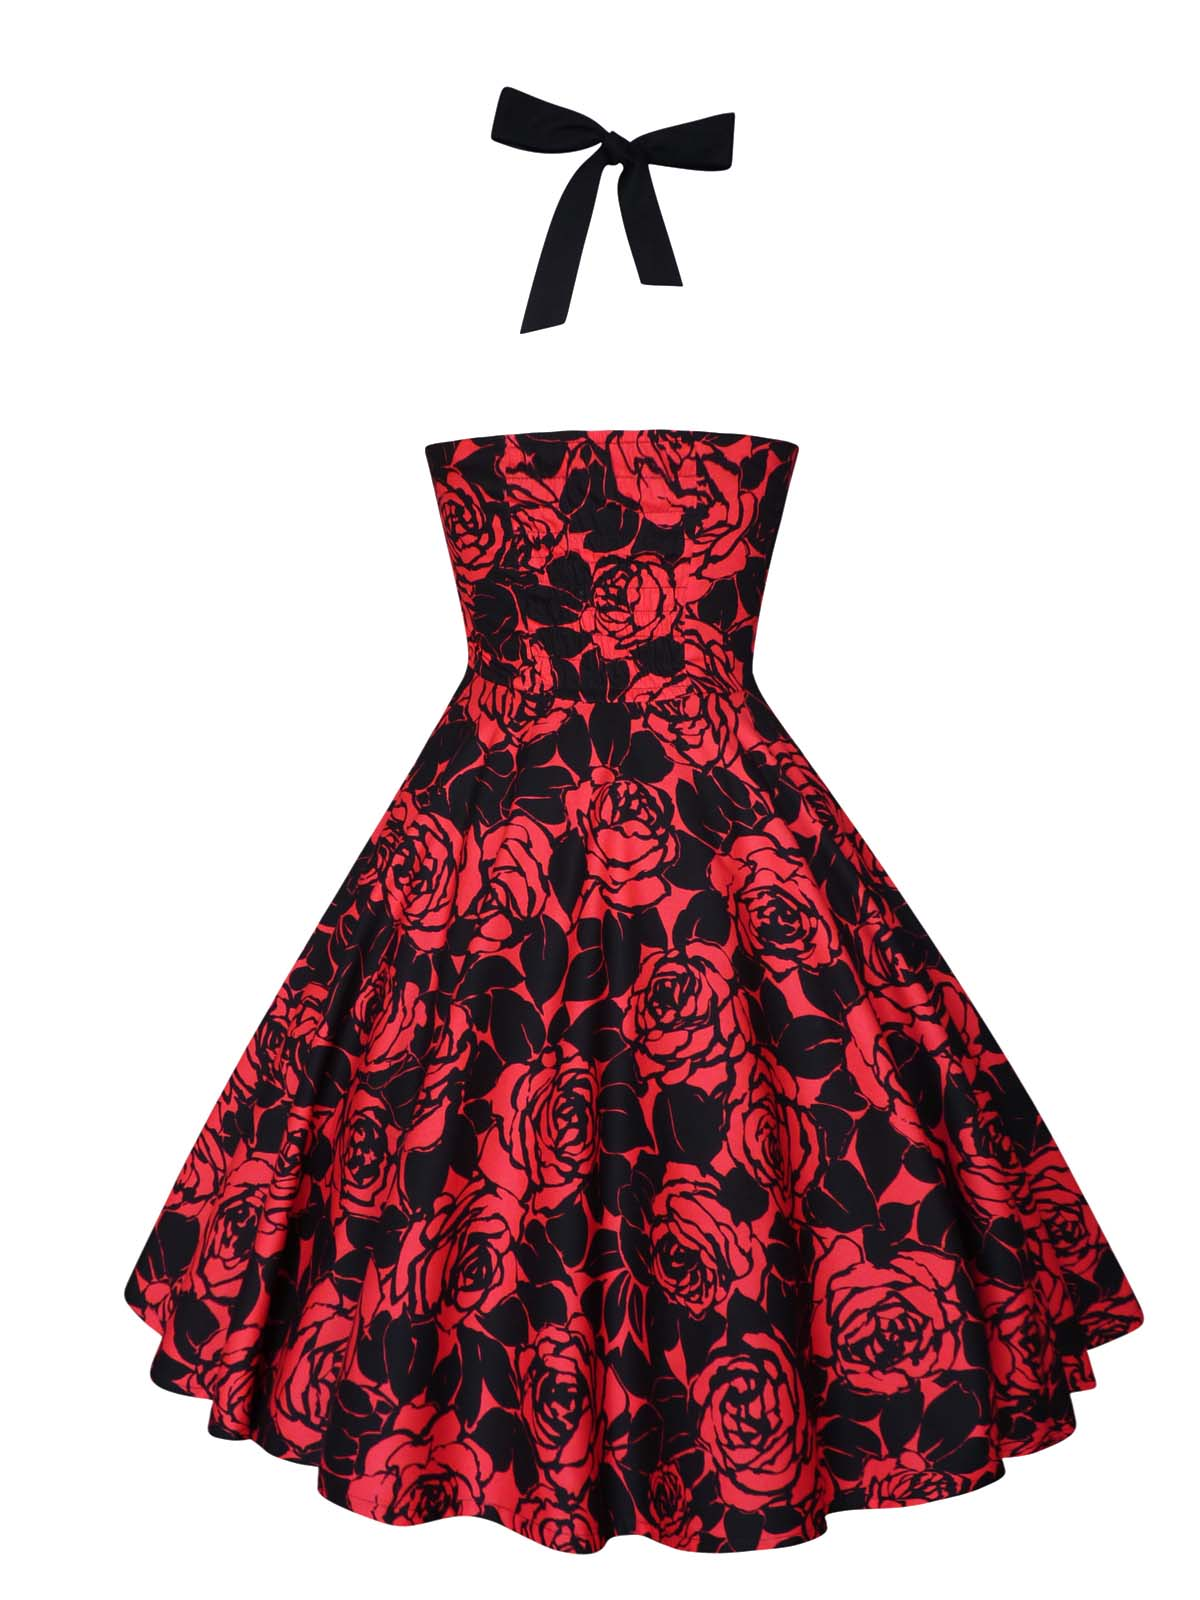 Red Roses Dress Gothic Party Dress Christmas Dress Pin Up Rockabilly